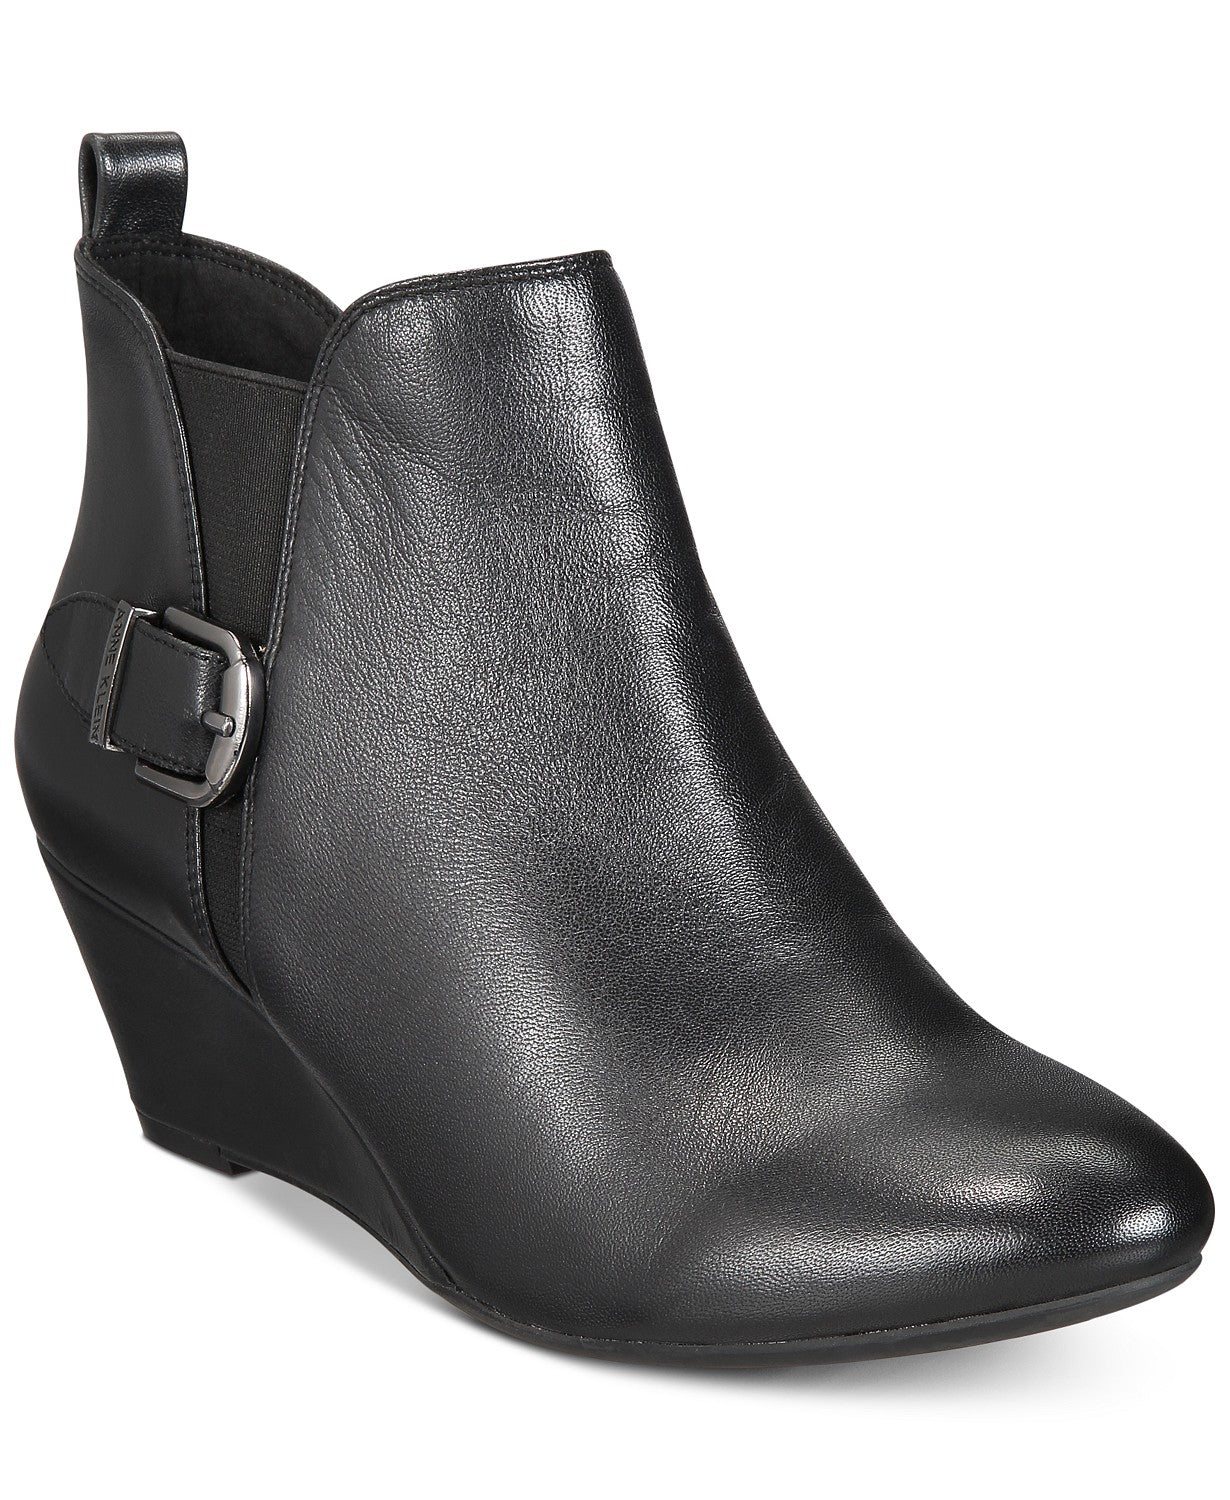 Anne Klein - Abilene iflex Wedge Booties